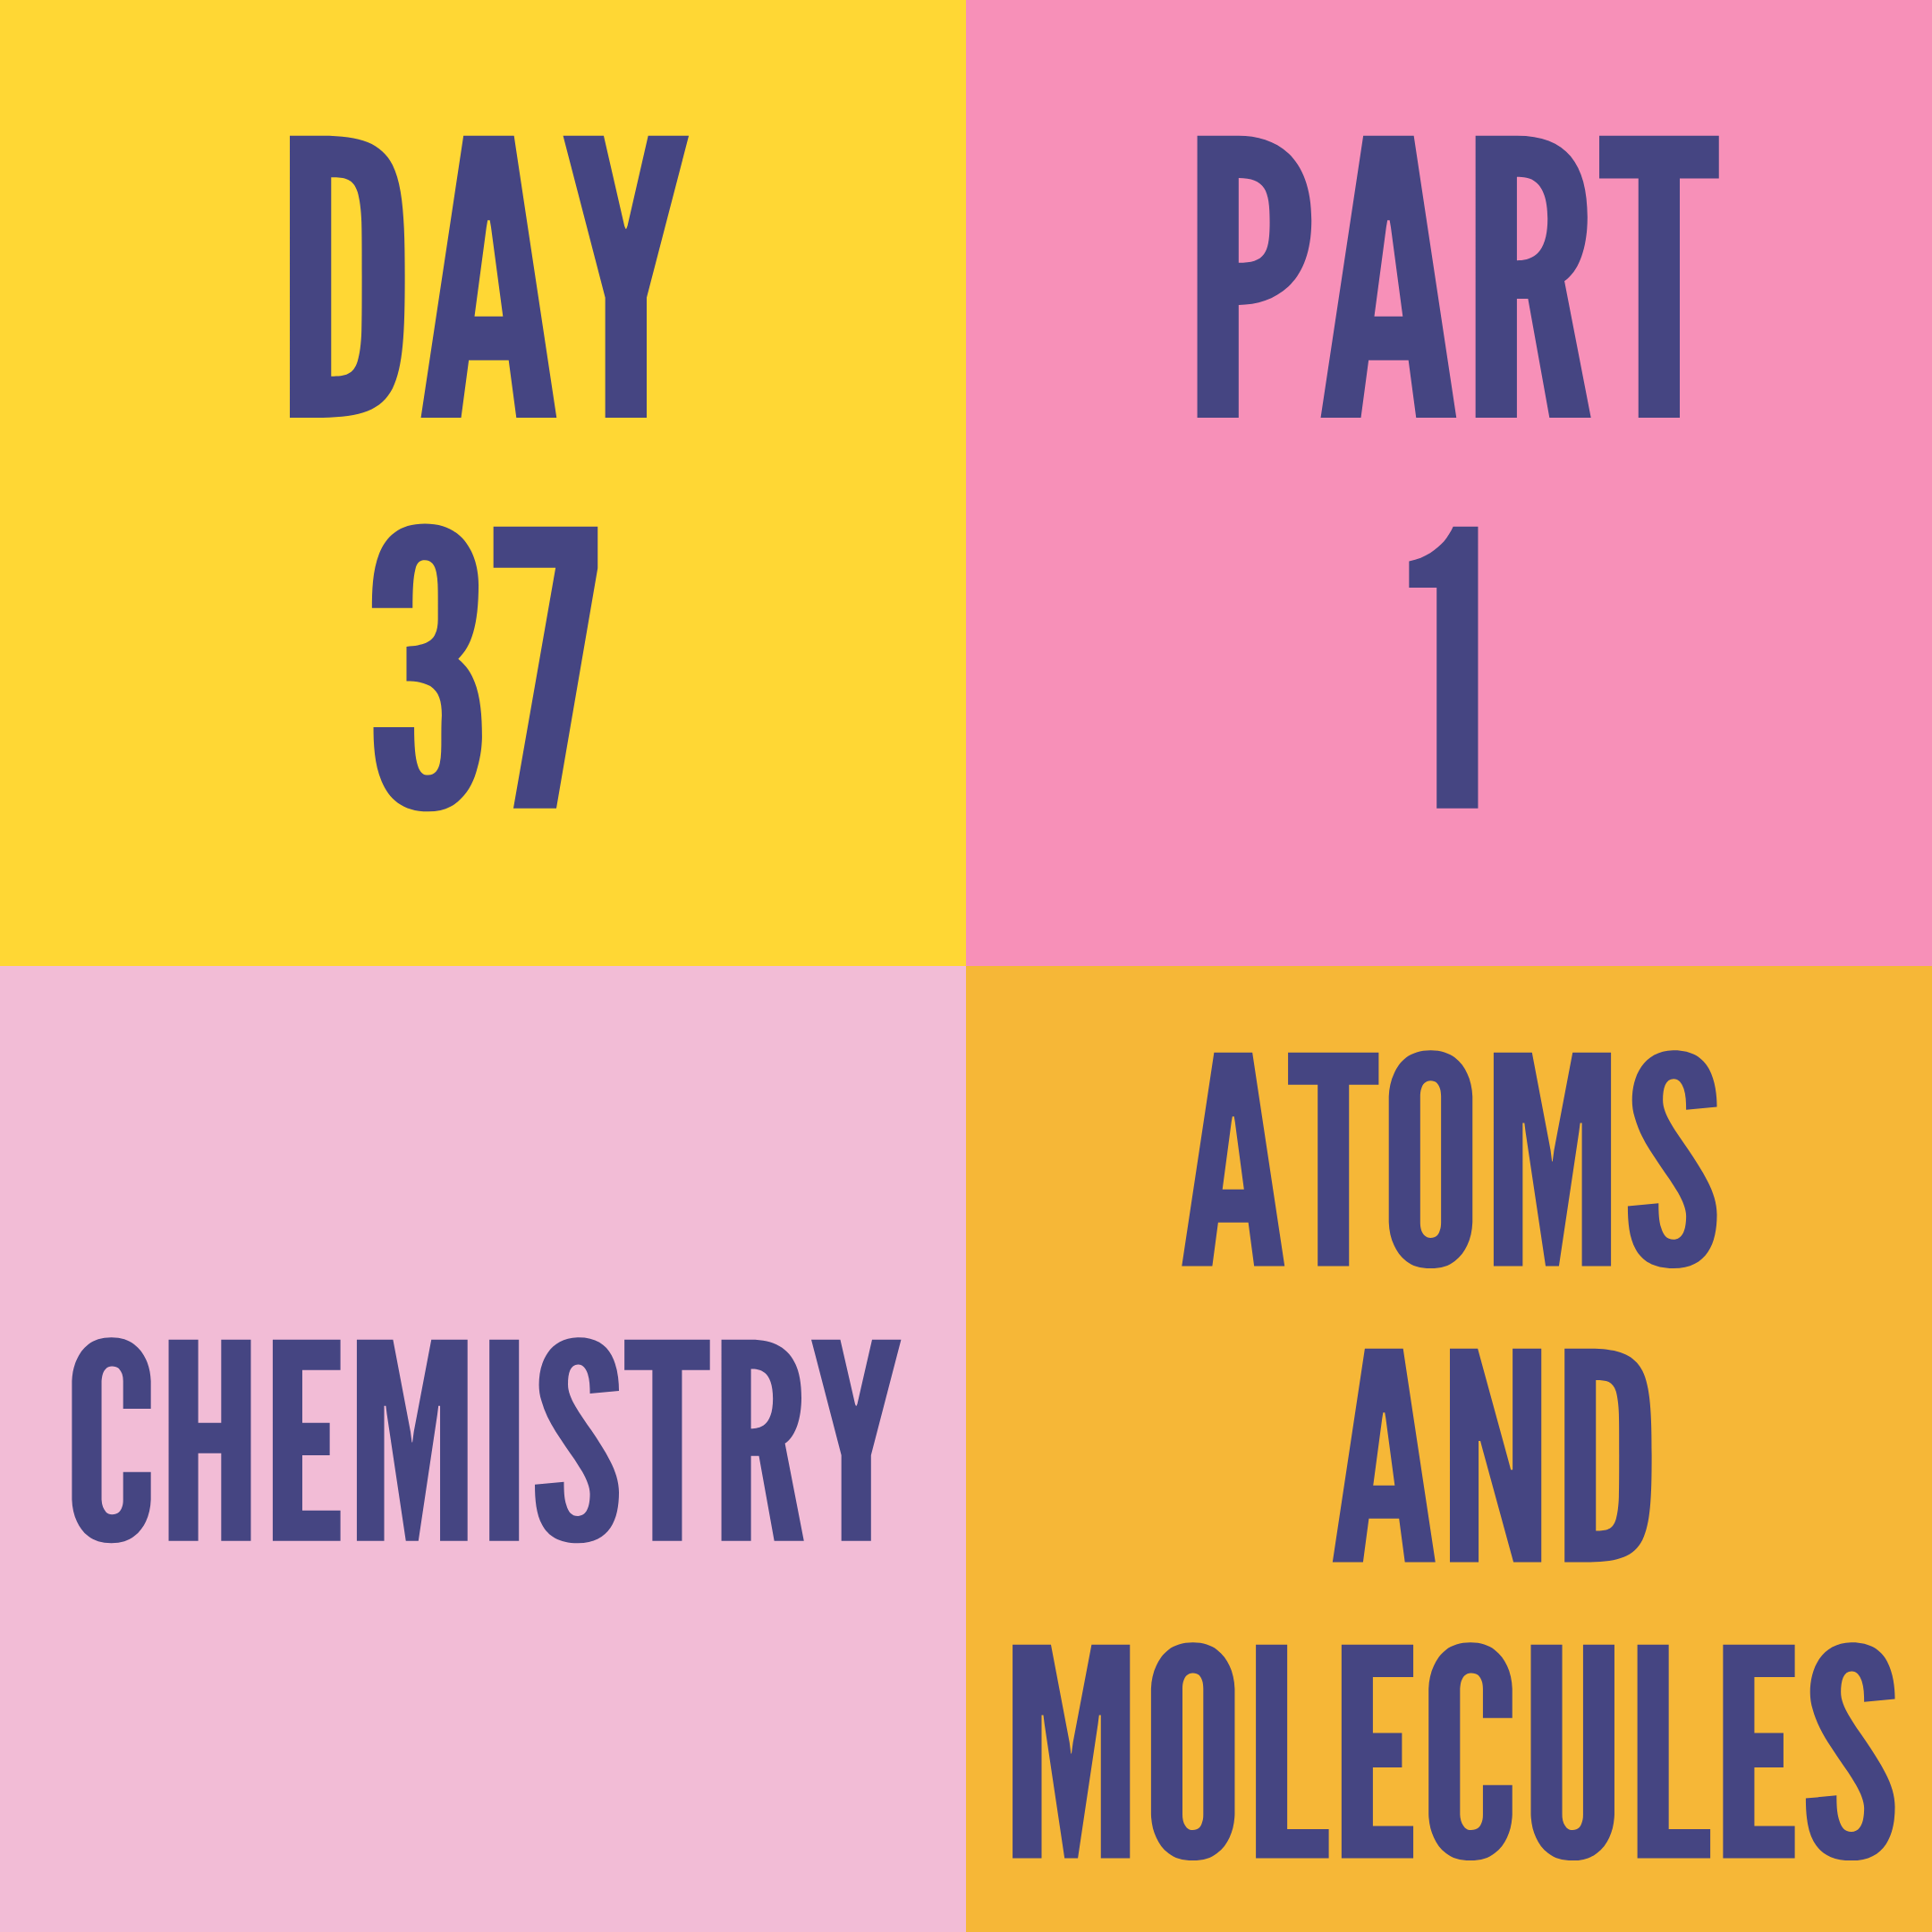 DAY-37 PART-1 ATOMS AND MOLECULES